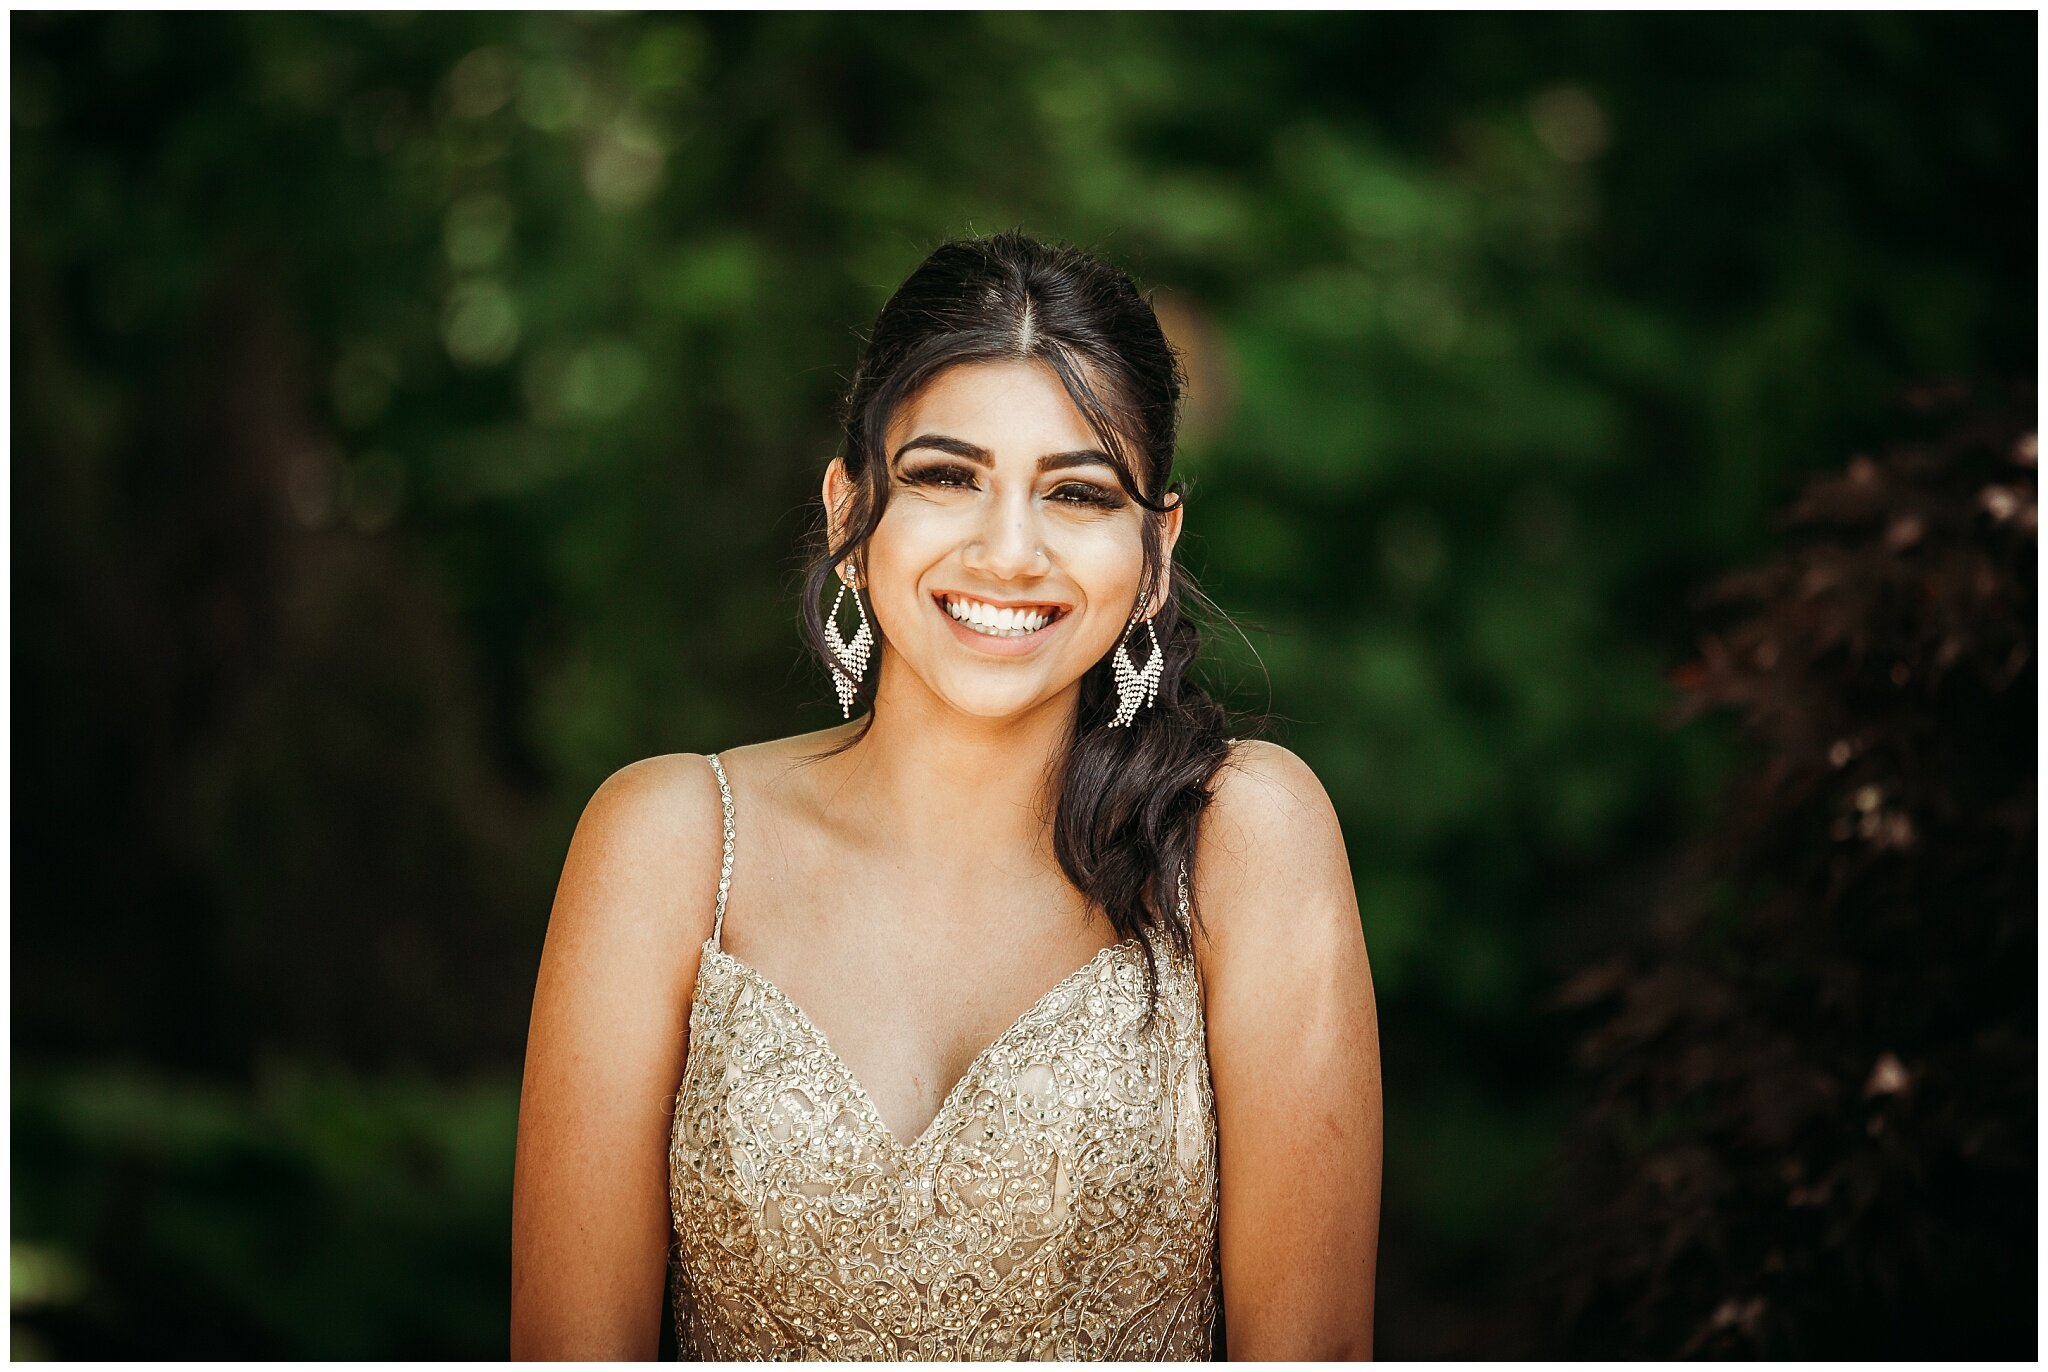 Abbotsford Highschool Prom Graduation Photographer 2019 Abbotsford fun bright_0003.jpg